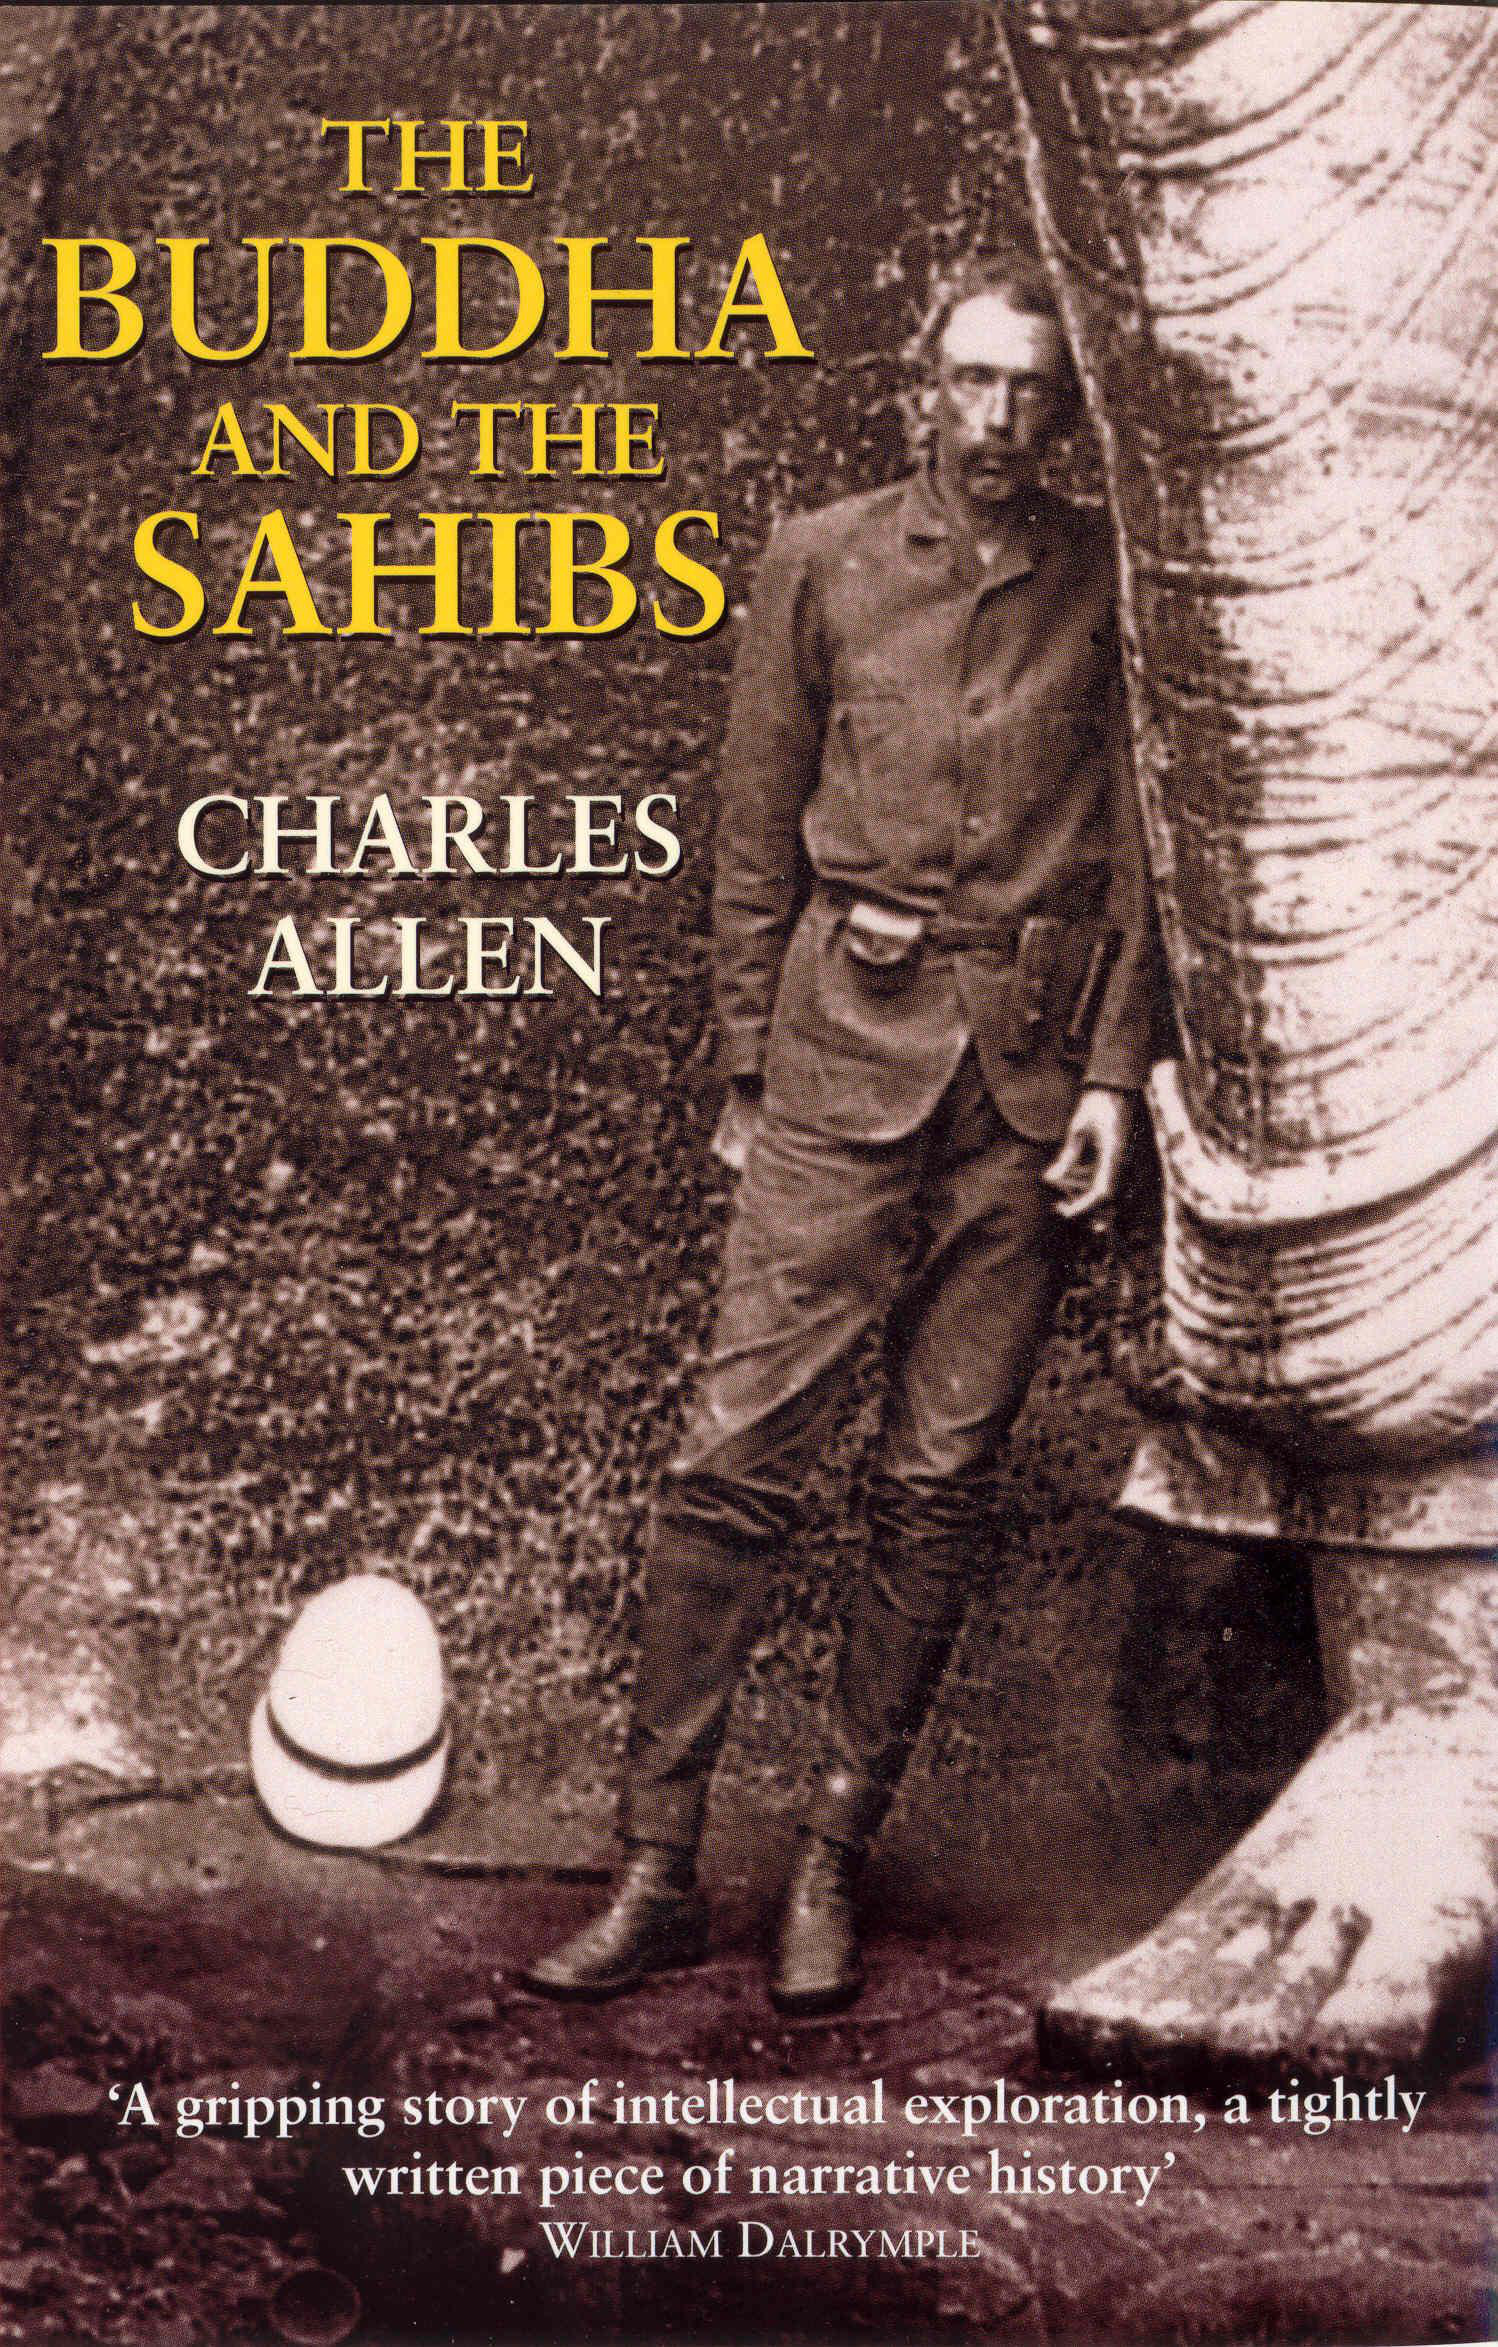 The Buddha and the Sahibs: The Men Who Discovered India's Lost Religion by Charles Allen, ISBN: 9780719554285